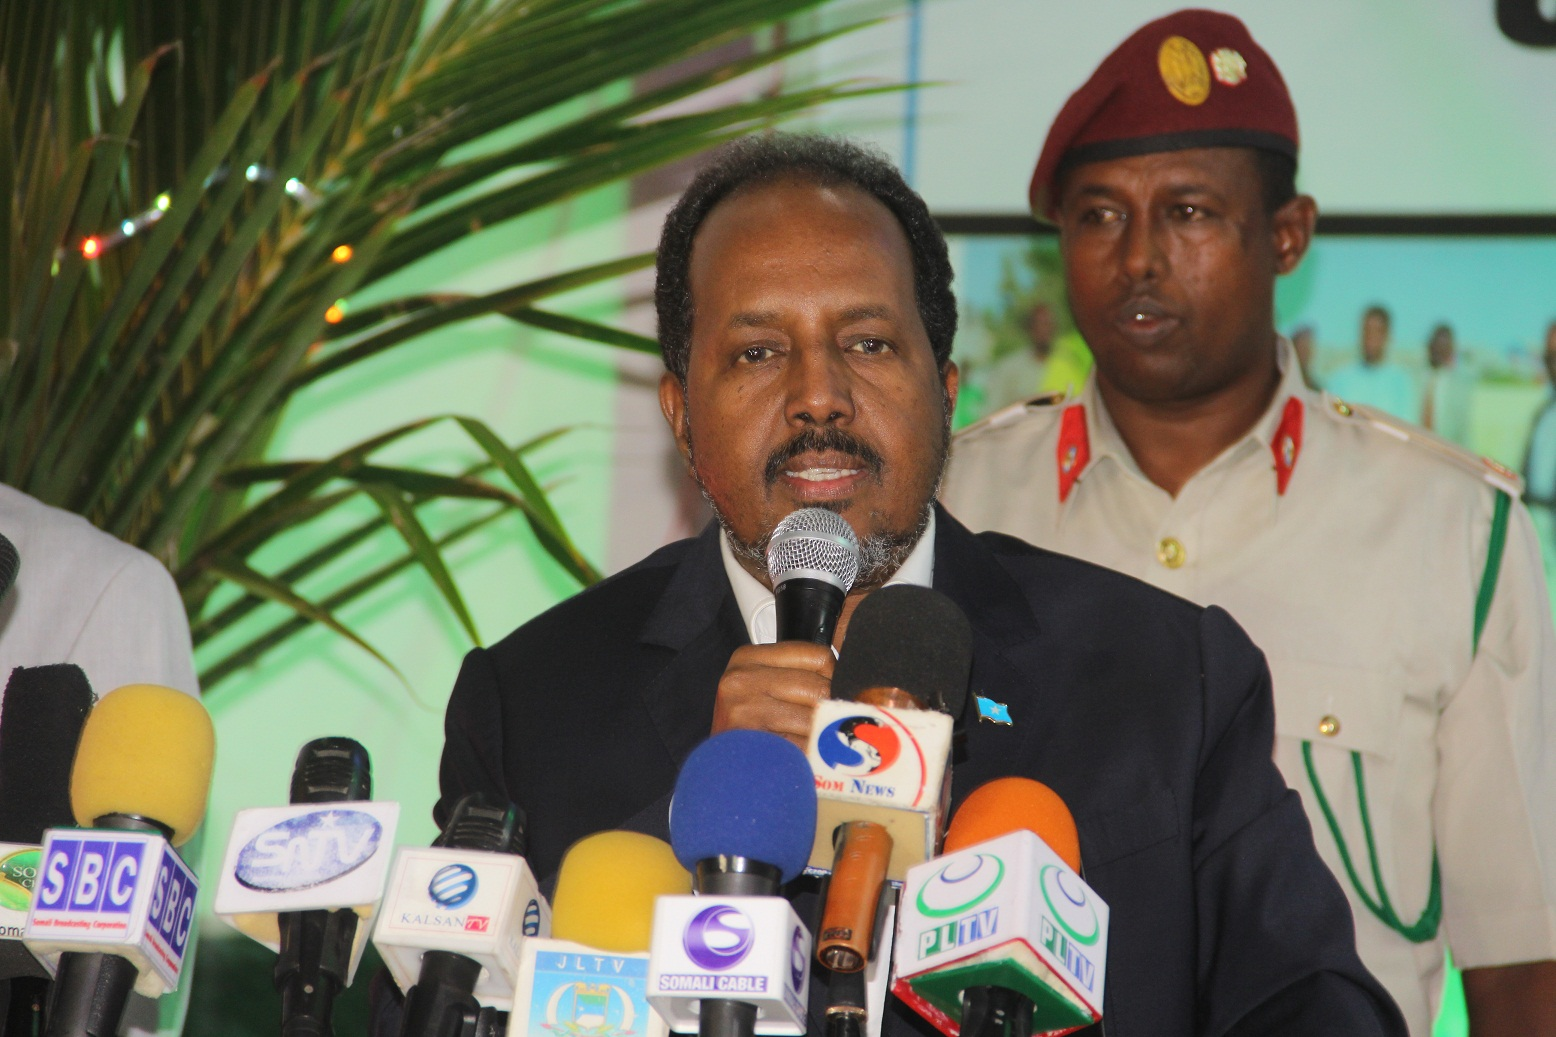 Somali president Prof Hassan Sheik Mahmoud addresses at the closing ceremony for the First Inter-state football tournament on Wednesday evening, 27 July 2016